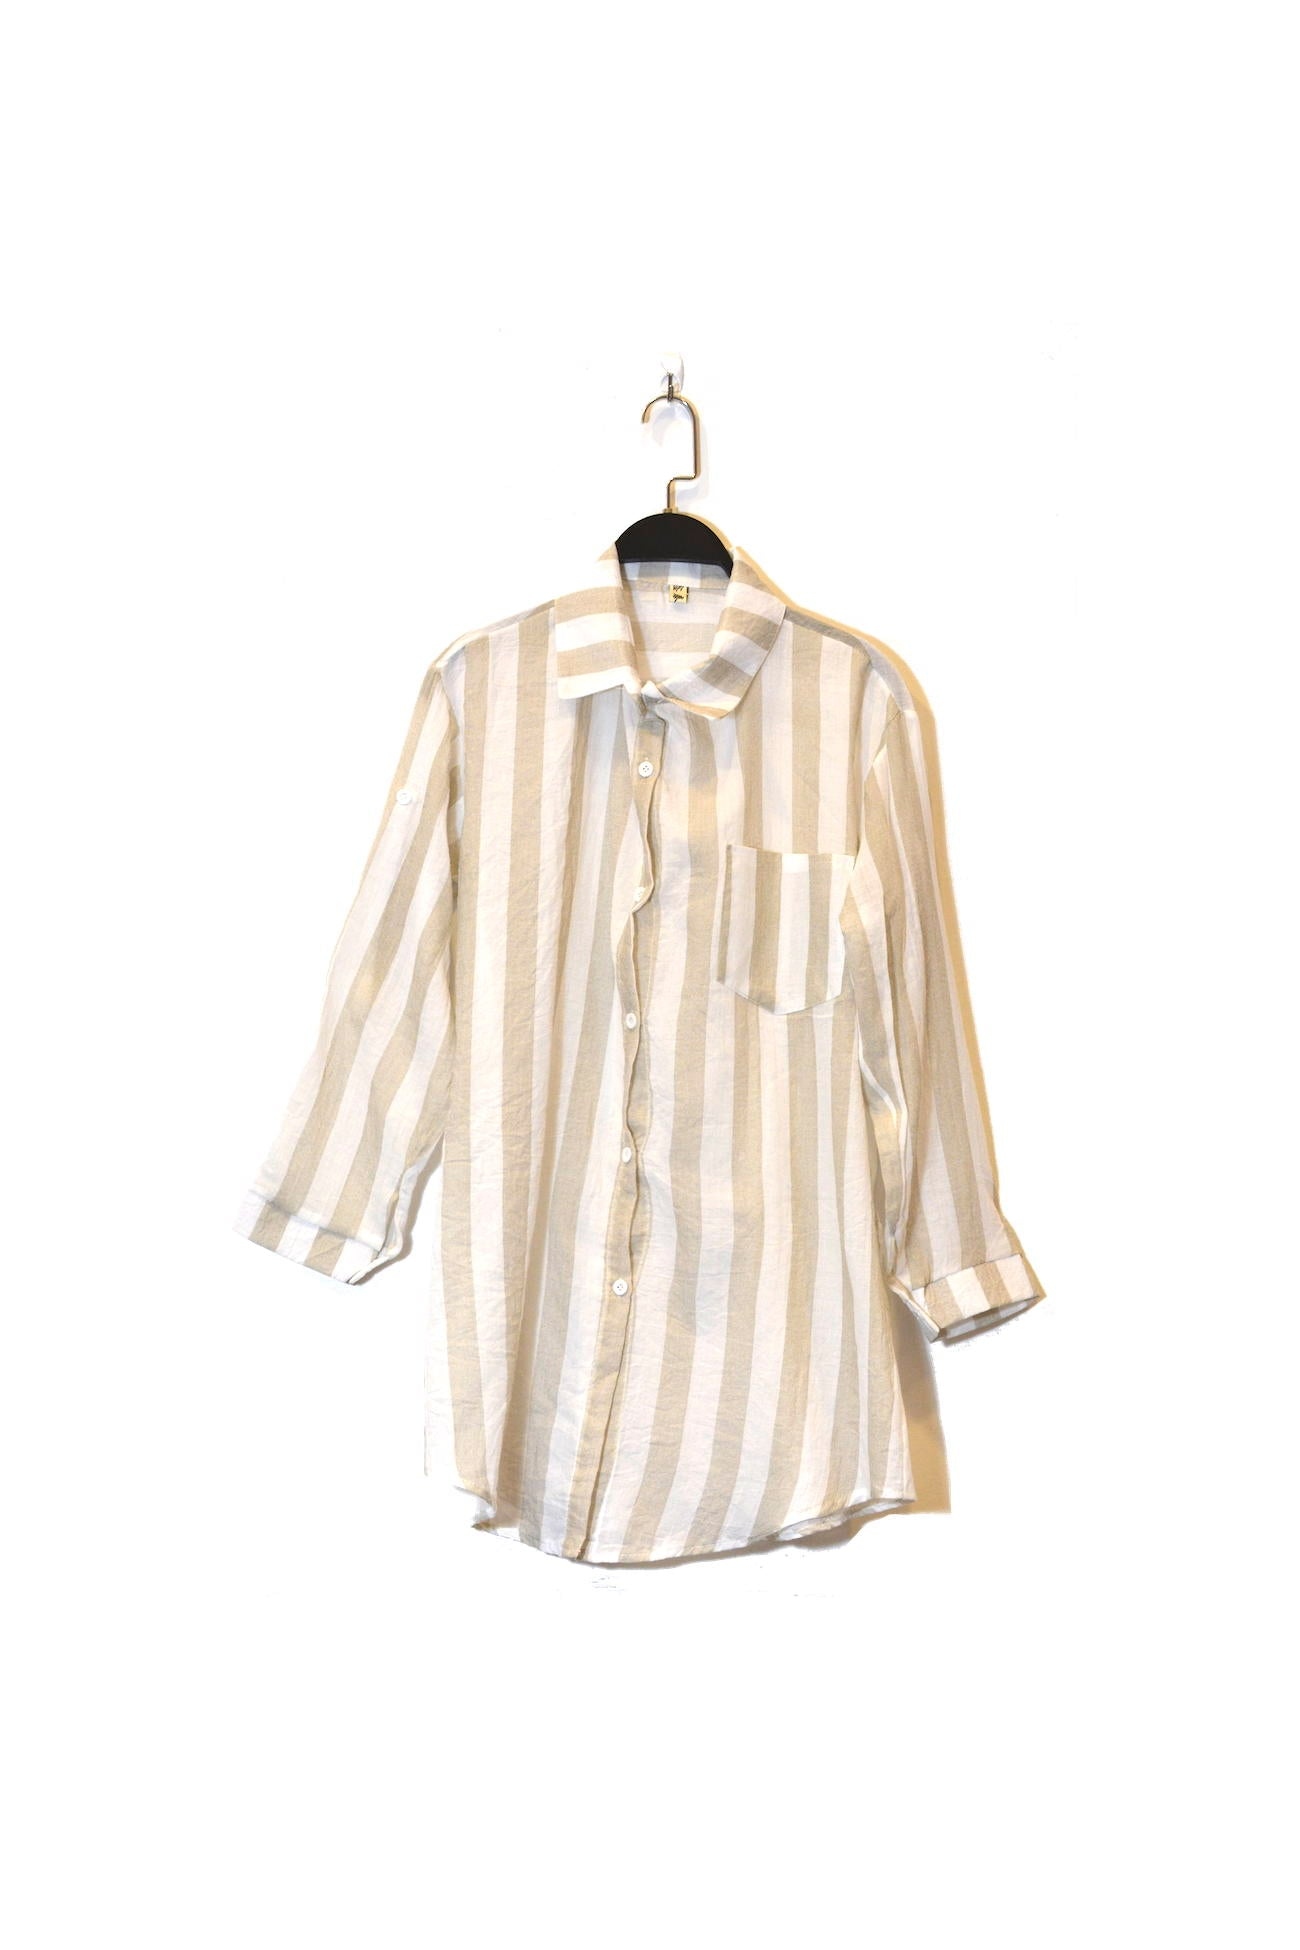 Wide Stripe Button Down Shirt  With Front Pocket